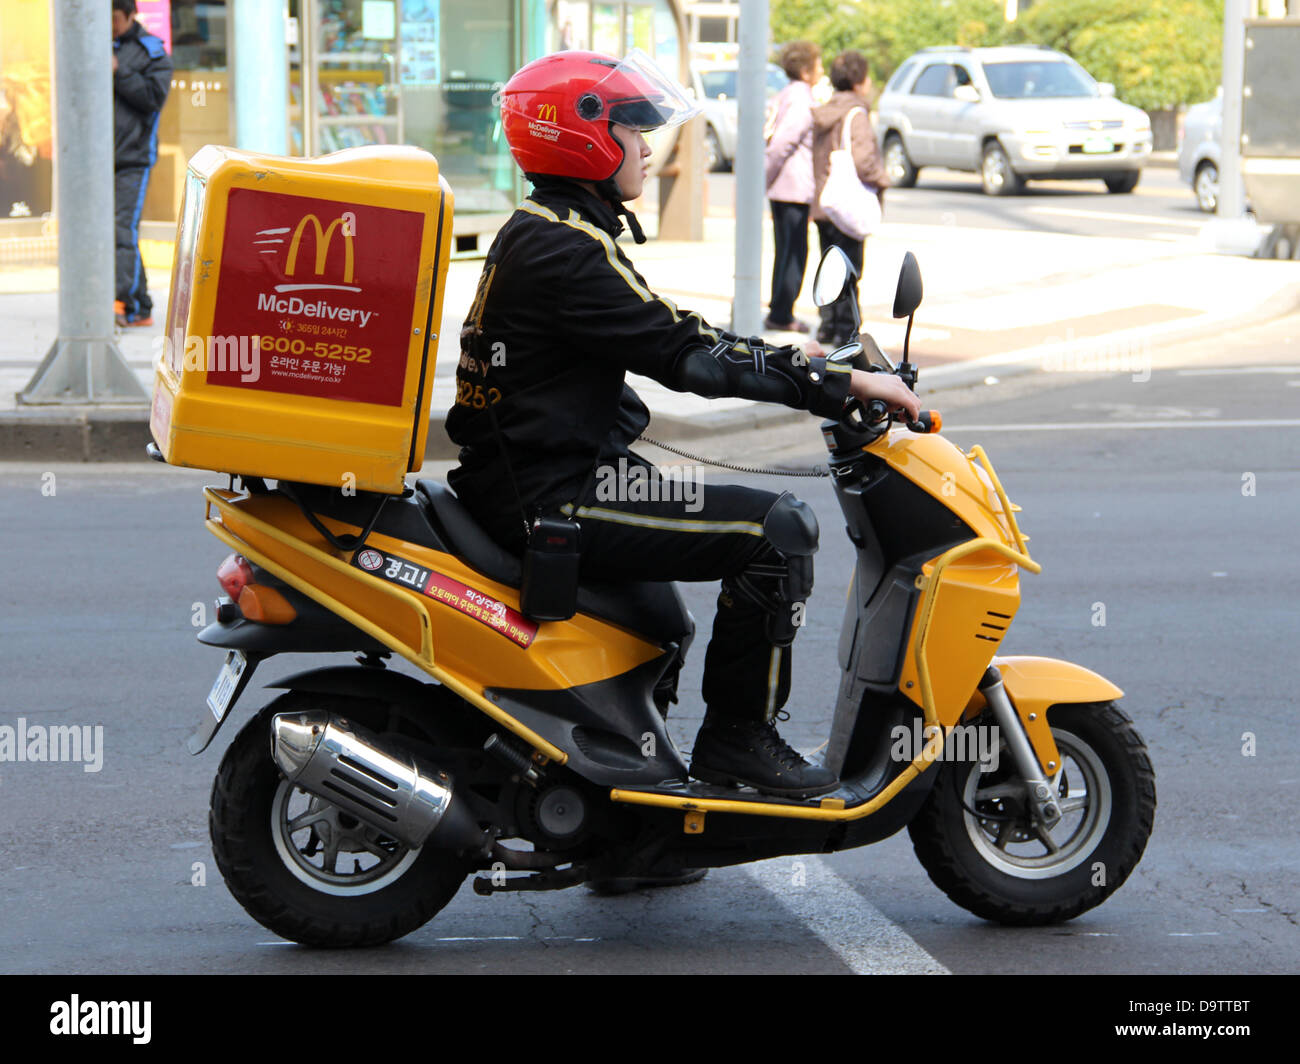 south-korea-mcdonalds-delivery-service-o